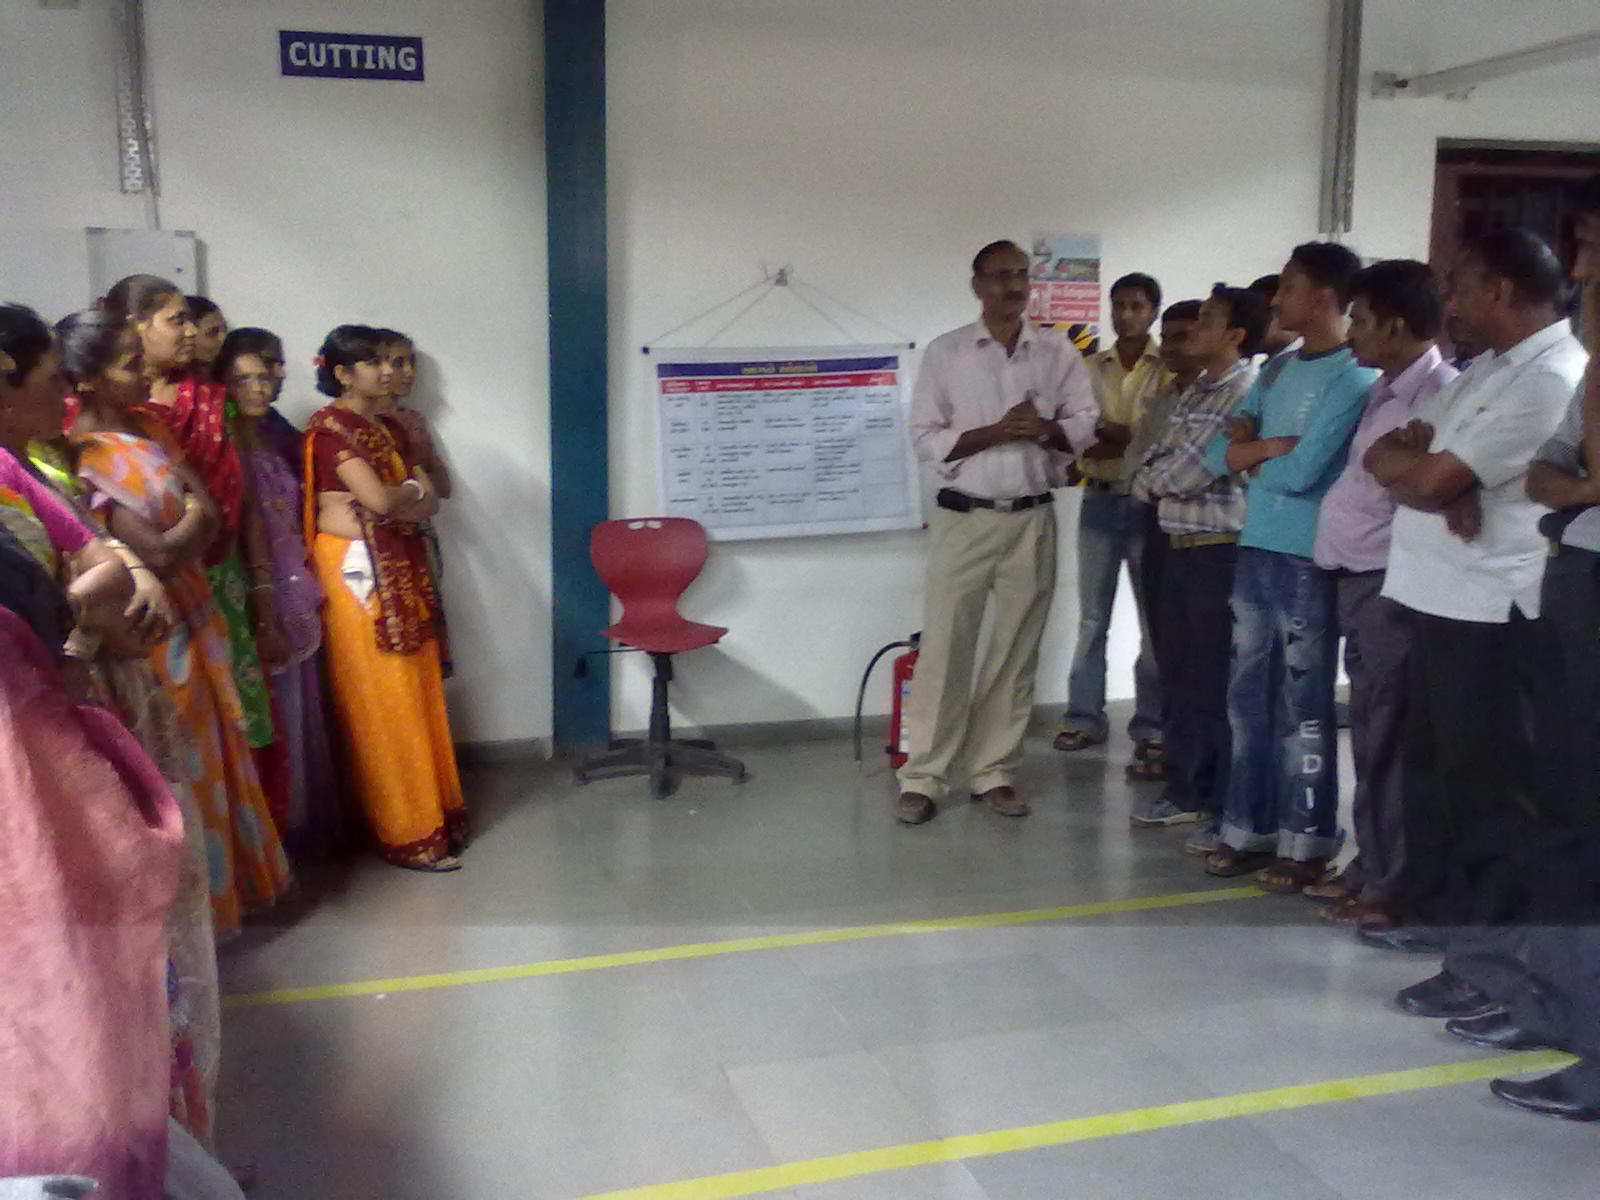 Fire Drill in Garment Factory - Fashion Literacy